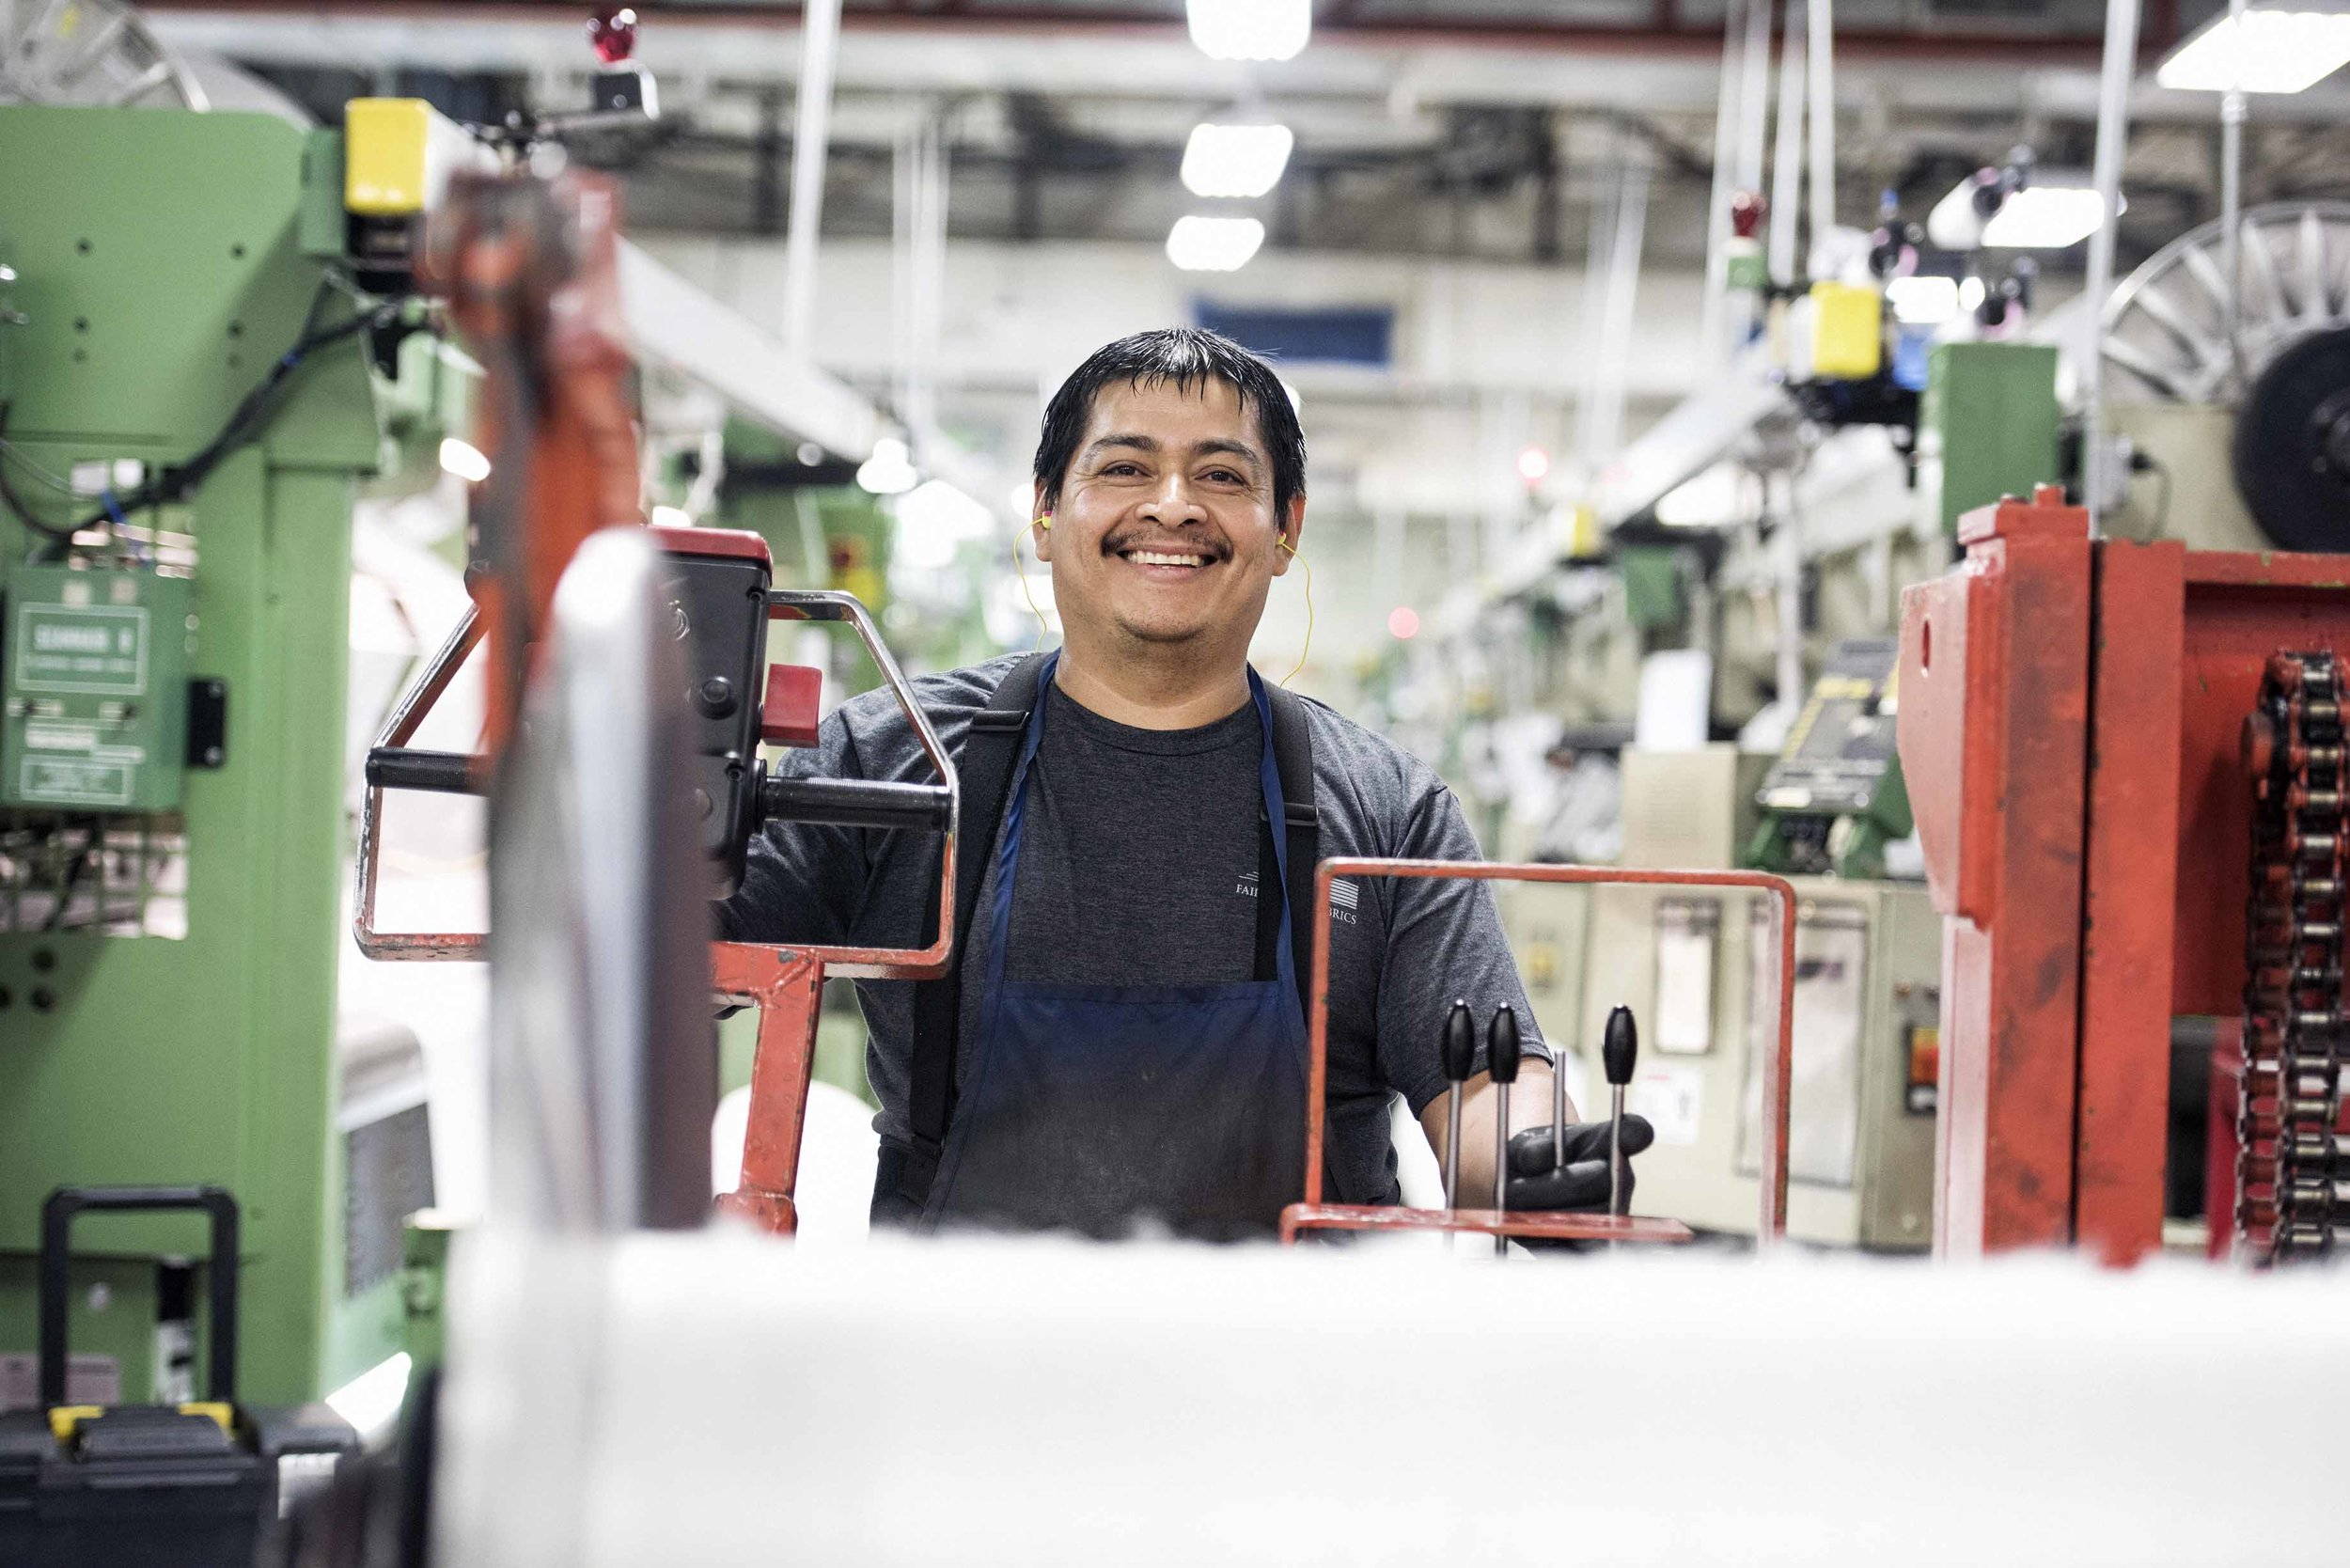 Fairystone Fabrics employee smiling near machinery